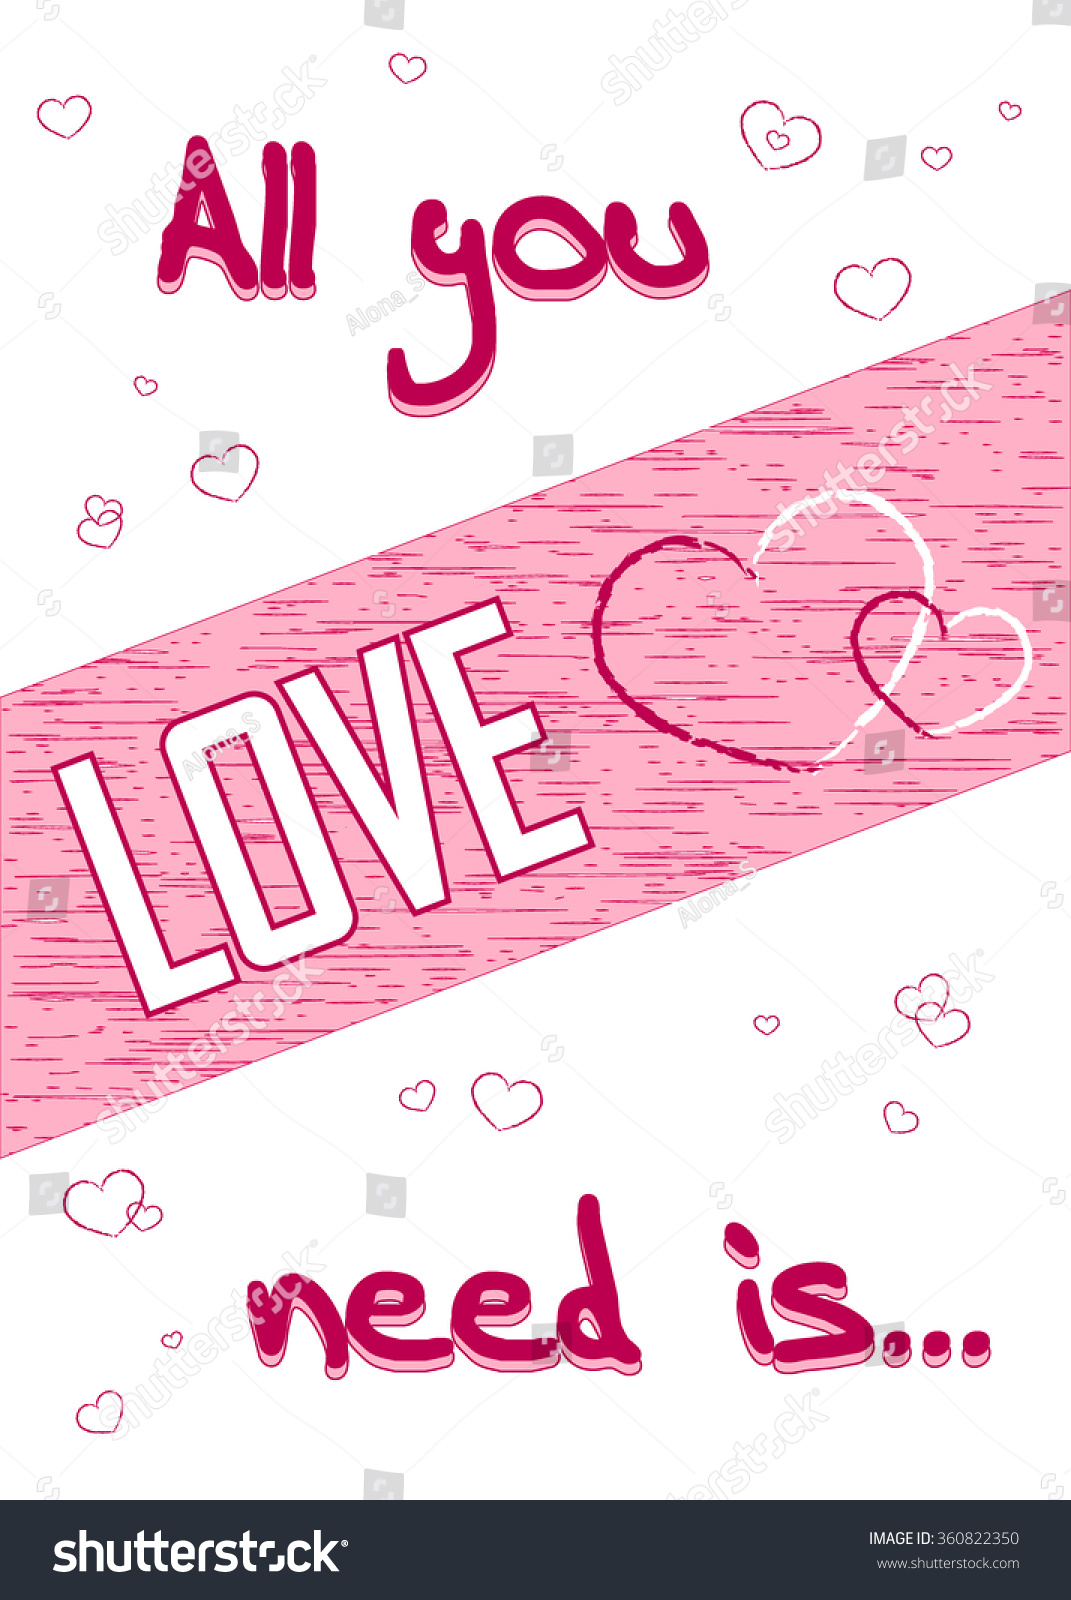 All You Need Is Love Romance Quote Text With Heart Typography Background Valentine Day